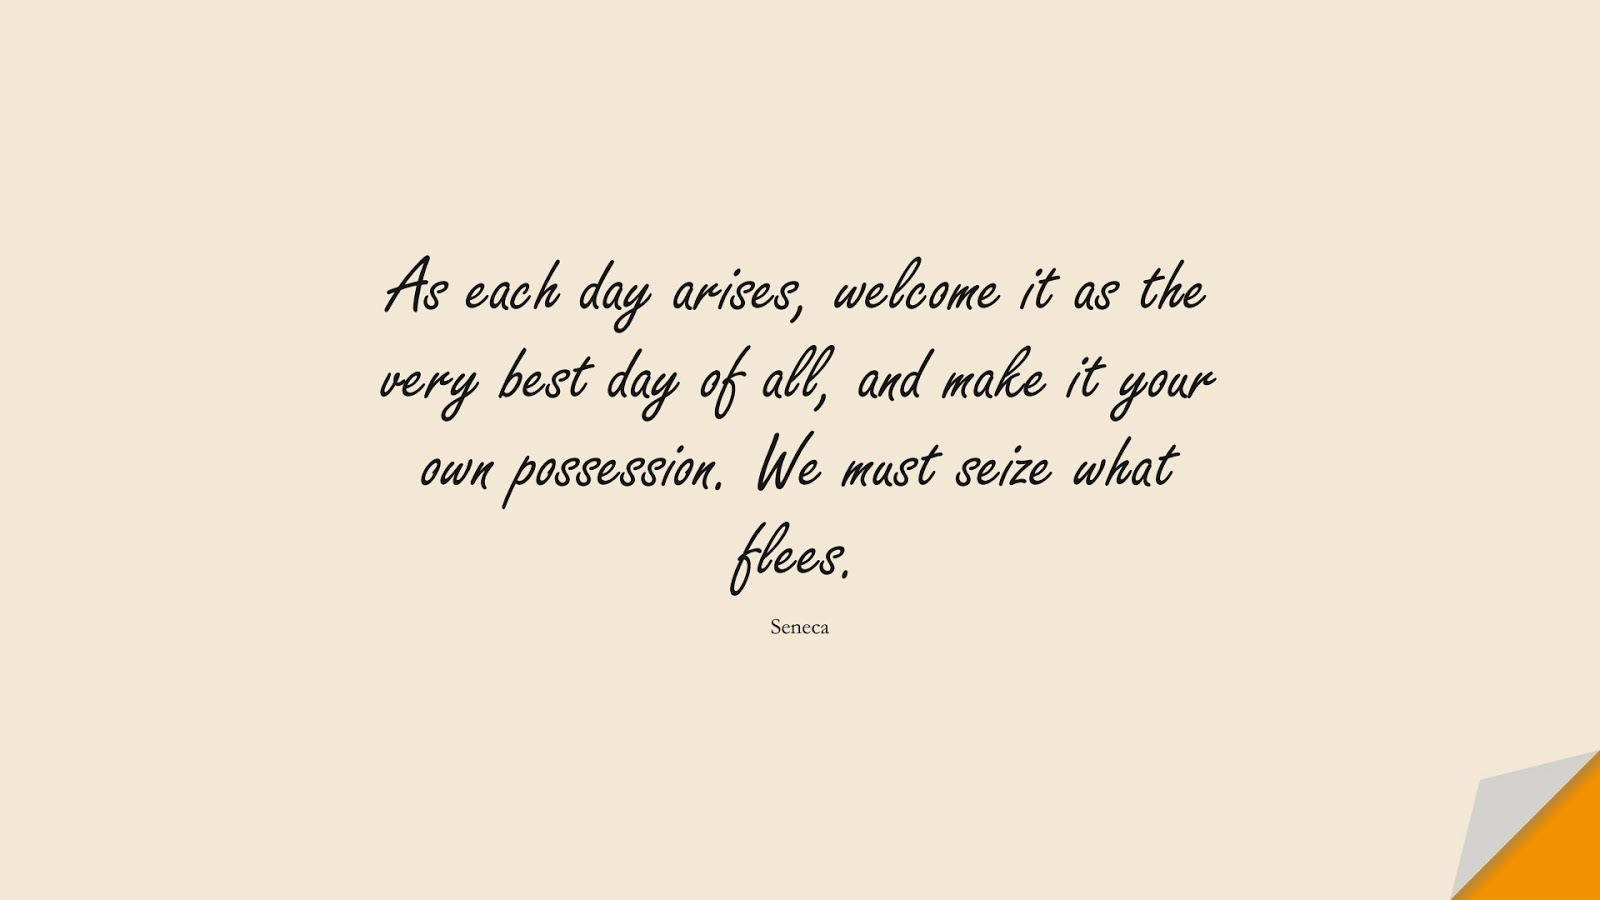 As each day arises, welcome it as the very best day of all, and make it your own possession. We must seize what flees. (Seneca);  #StoicQuotes